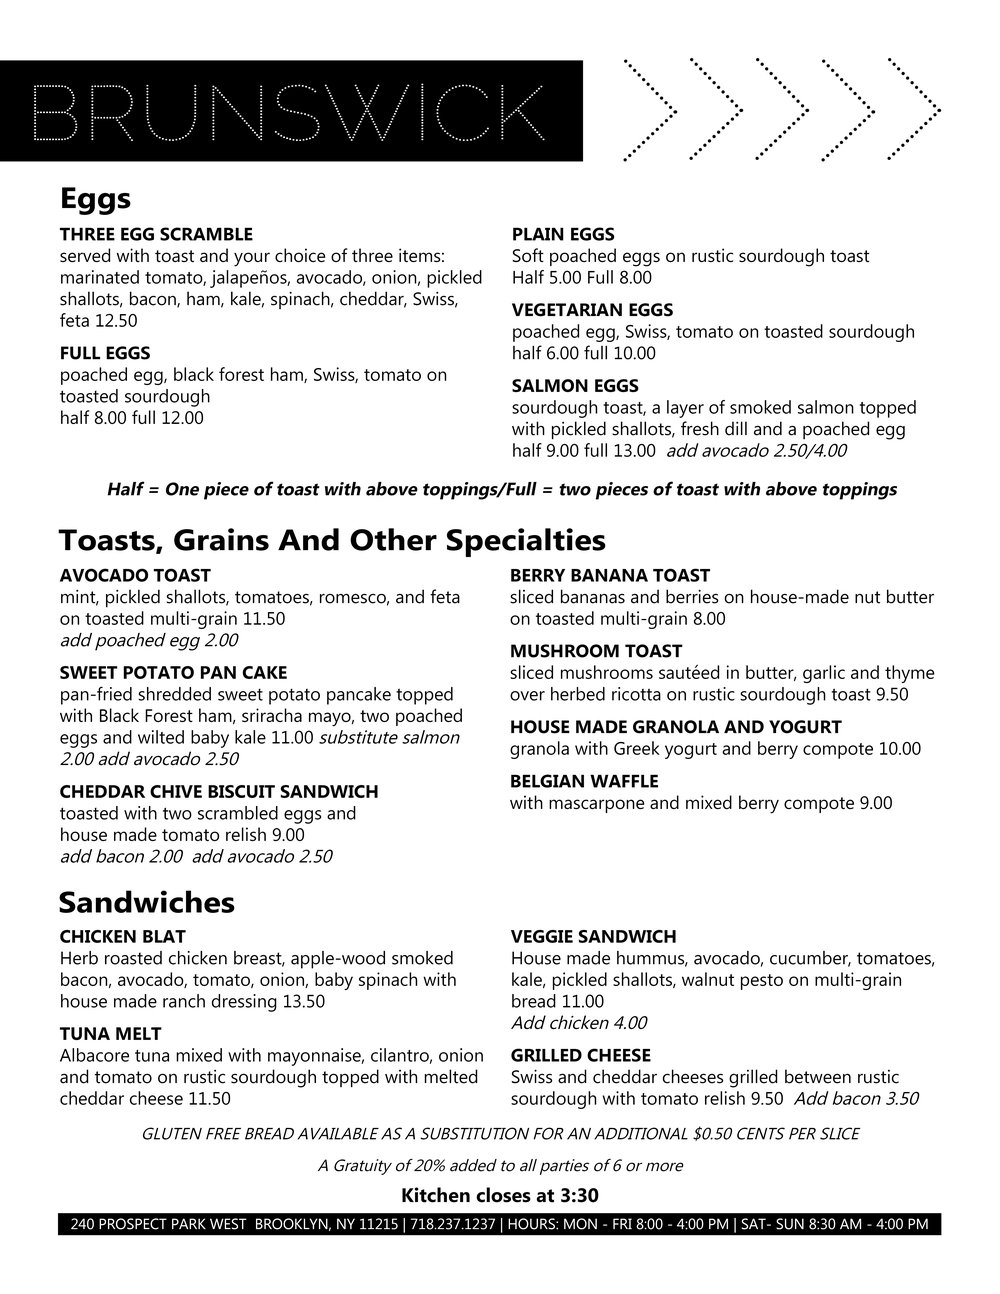 Brunswick Menu October 2018.jpg